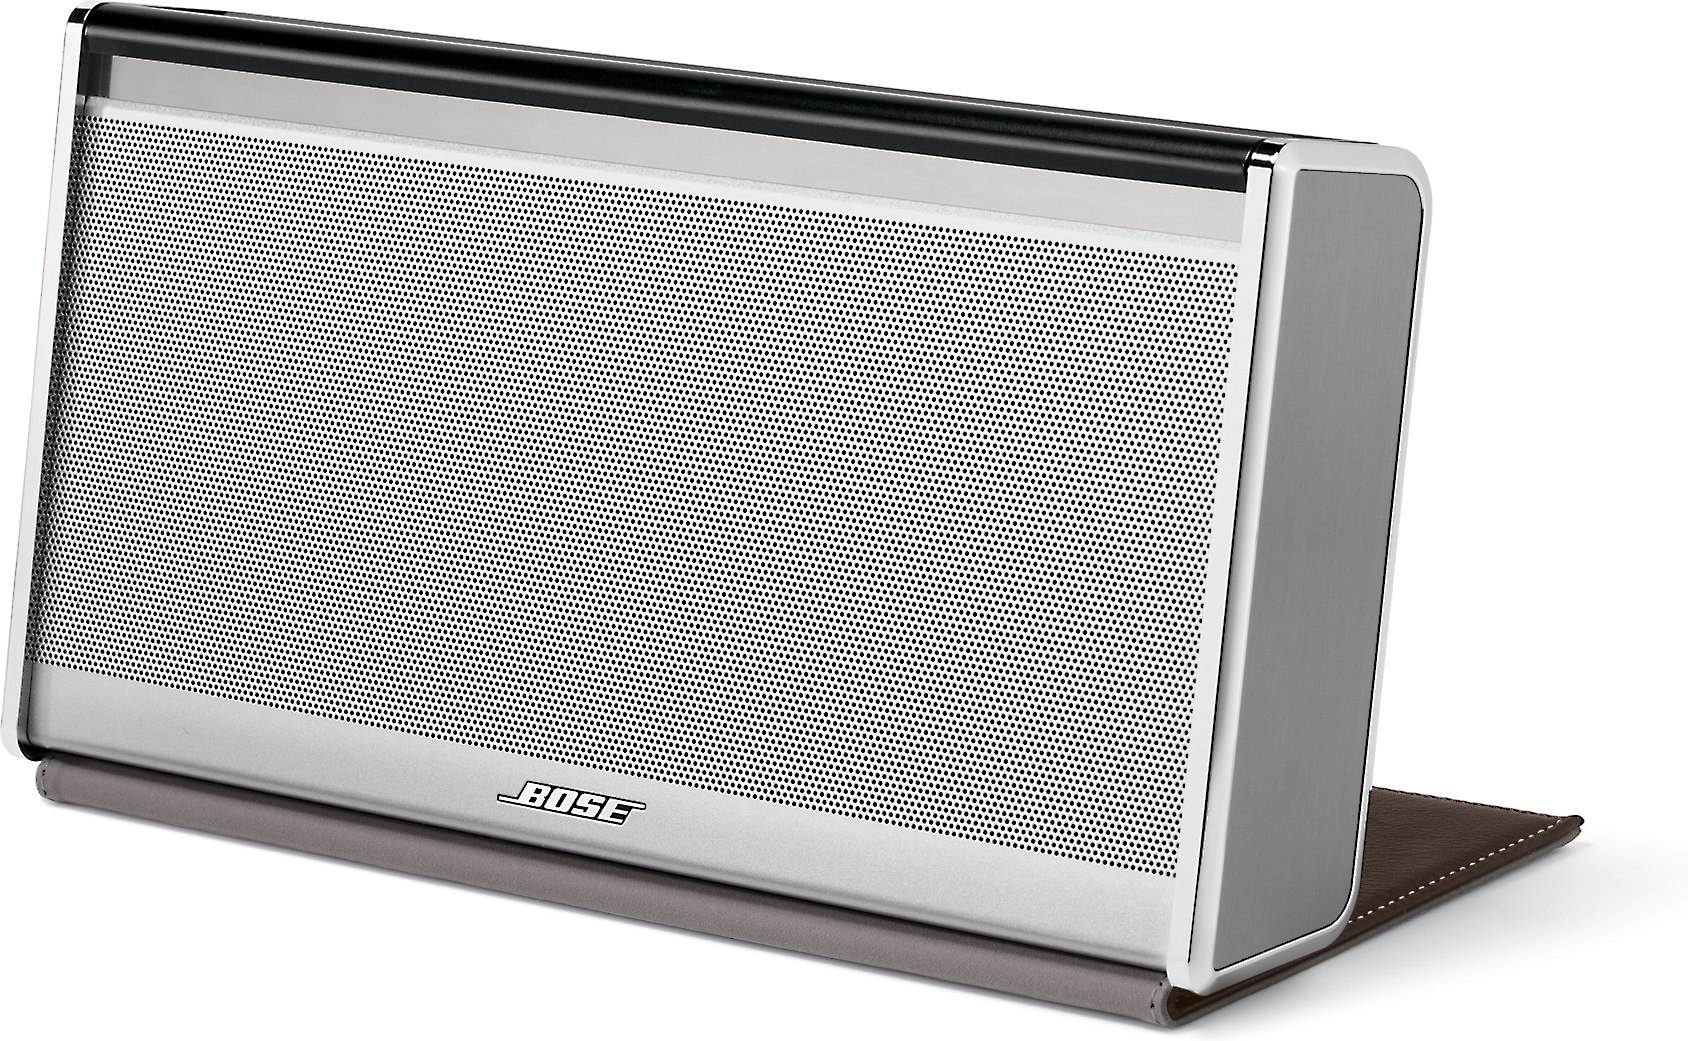 Bose® SoundLink® Wireless Mobile speaker - LX with silver finish and dark  brown leather cover at Crutchfield